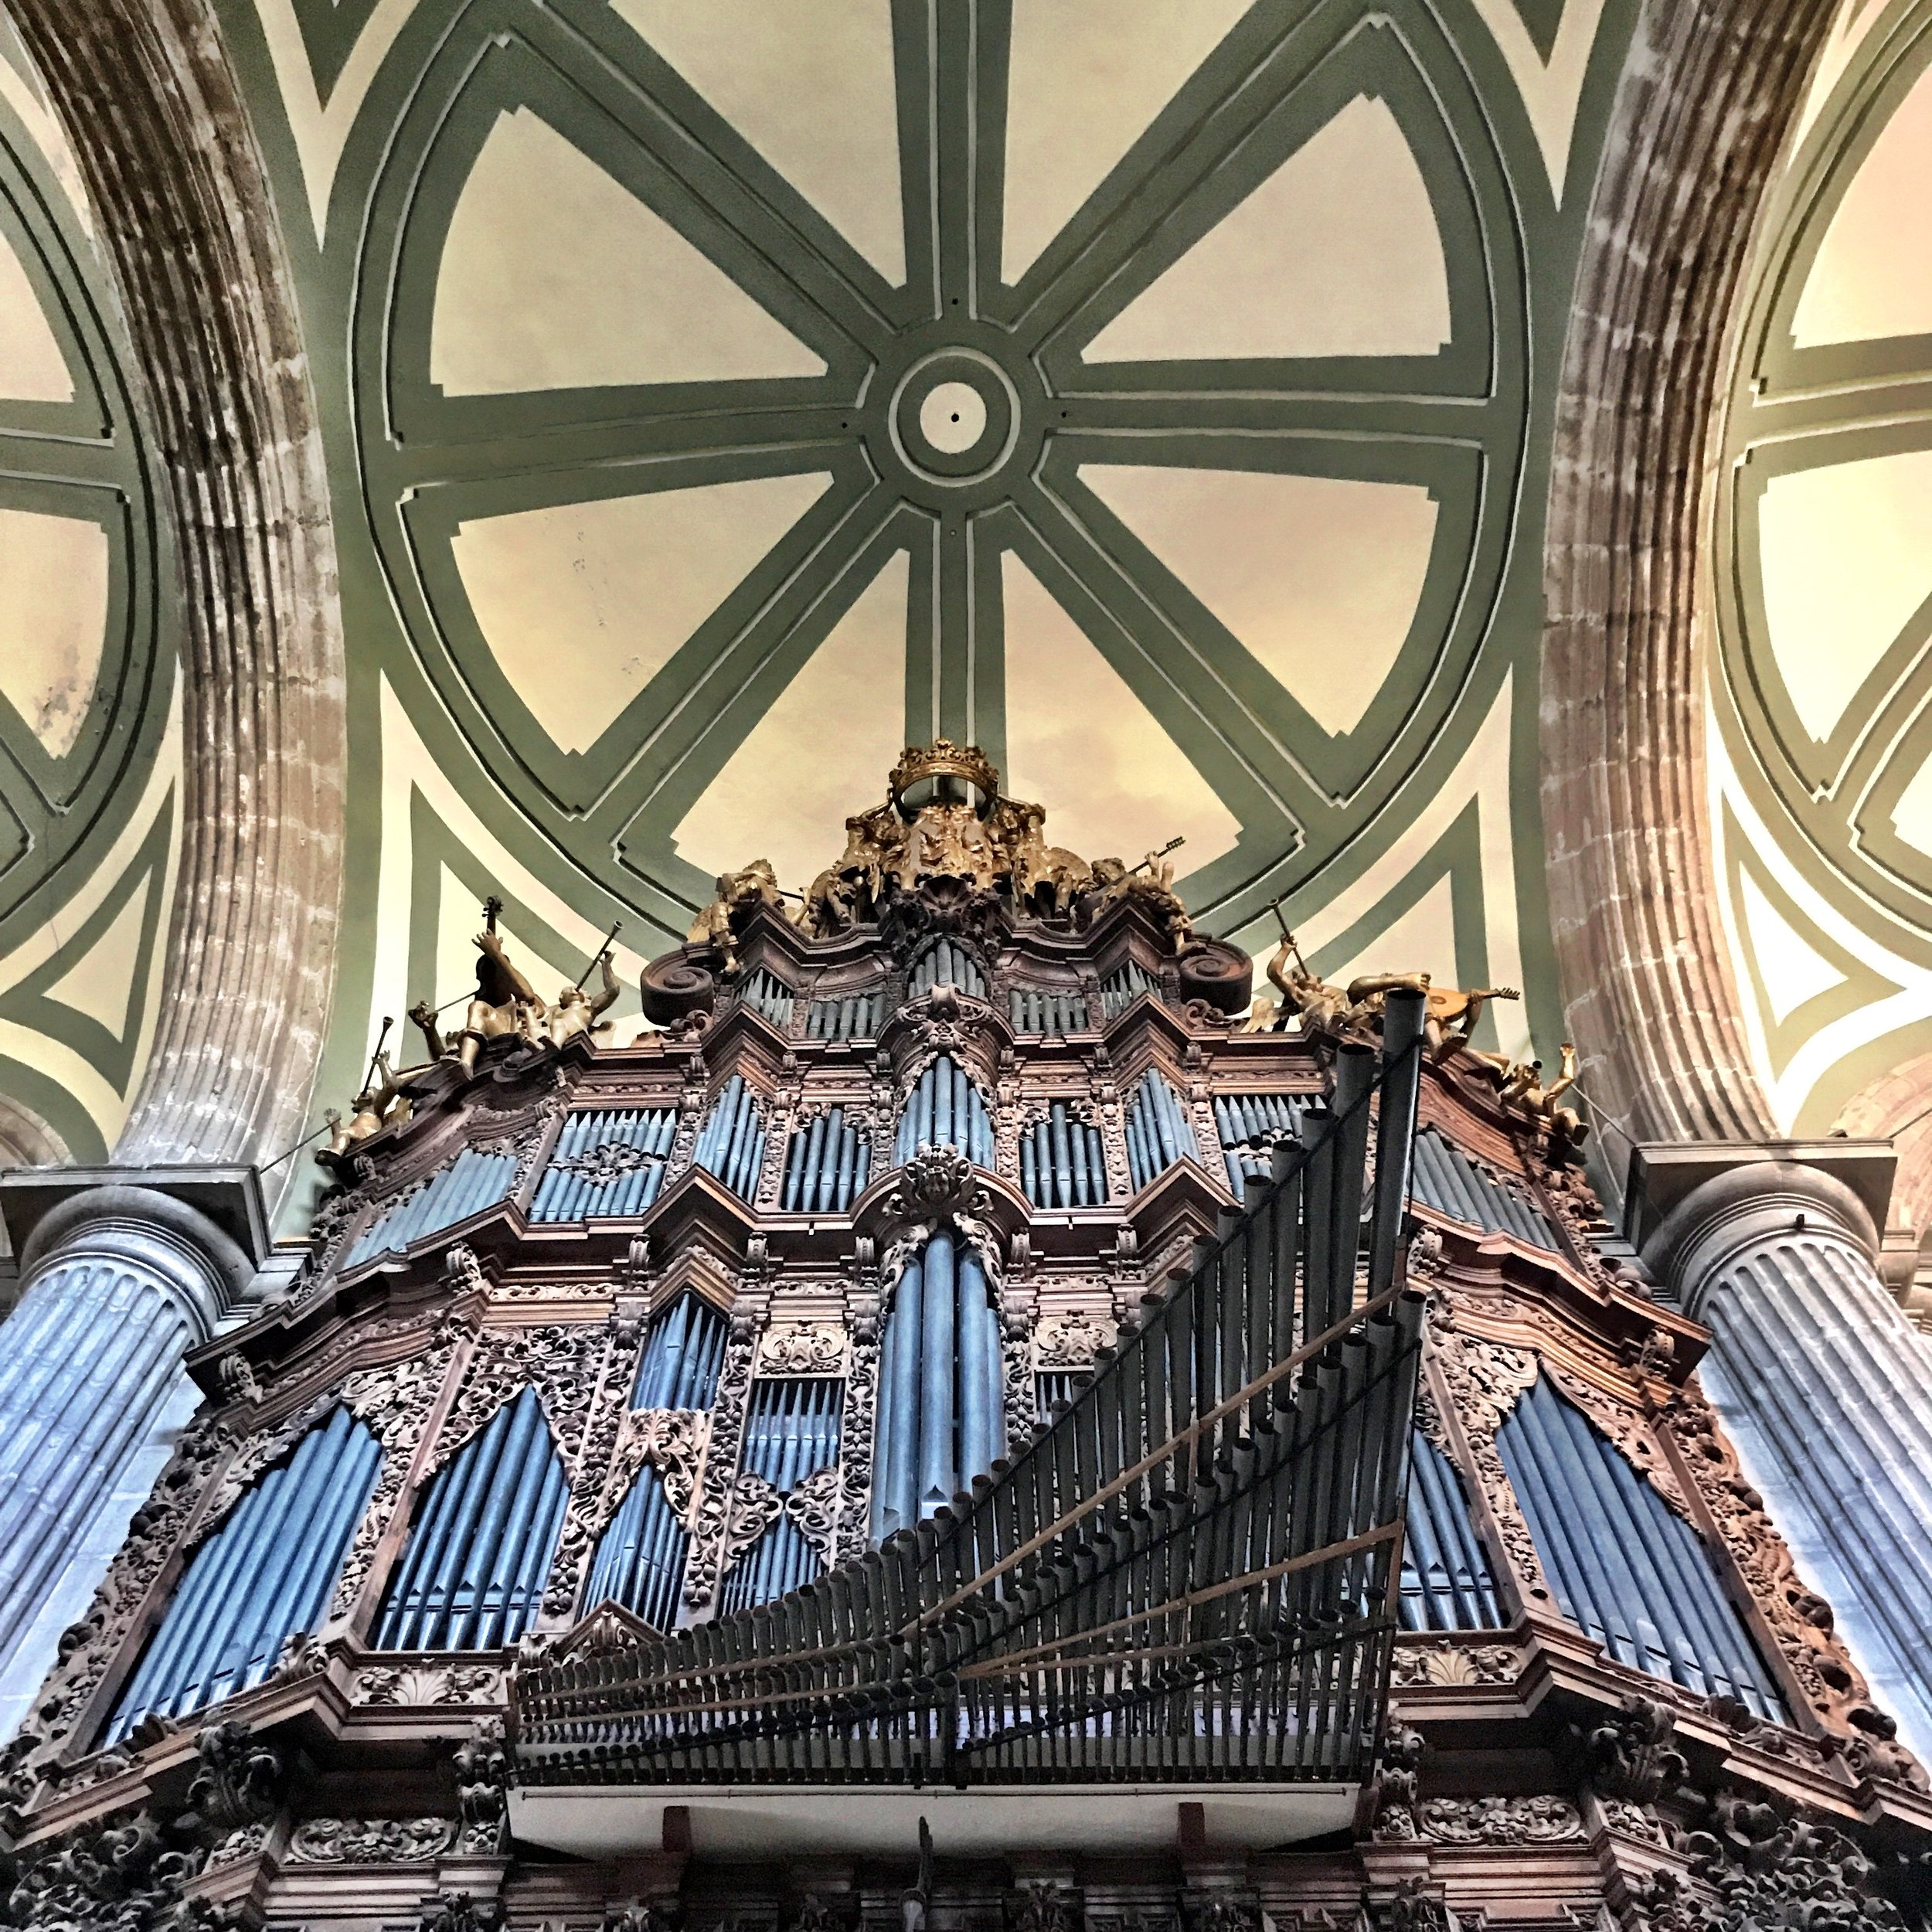 The Metropolitan Cathedral organ